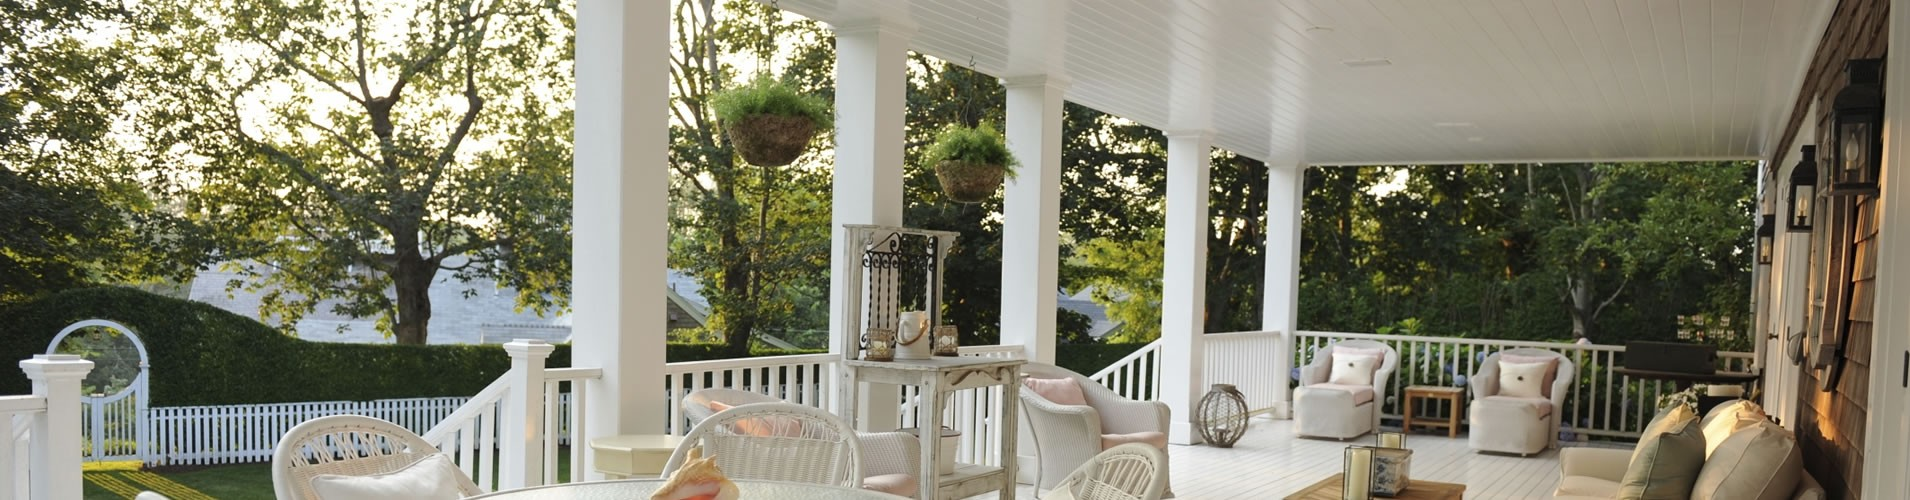 Brentwood, TN Patio Covers